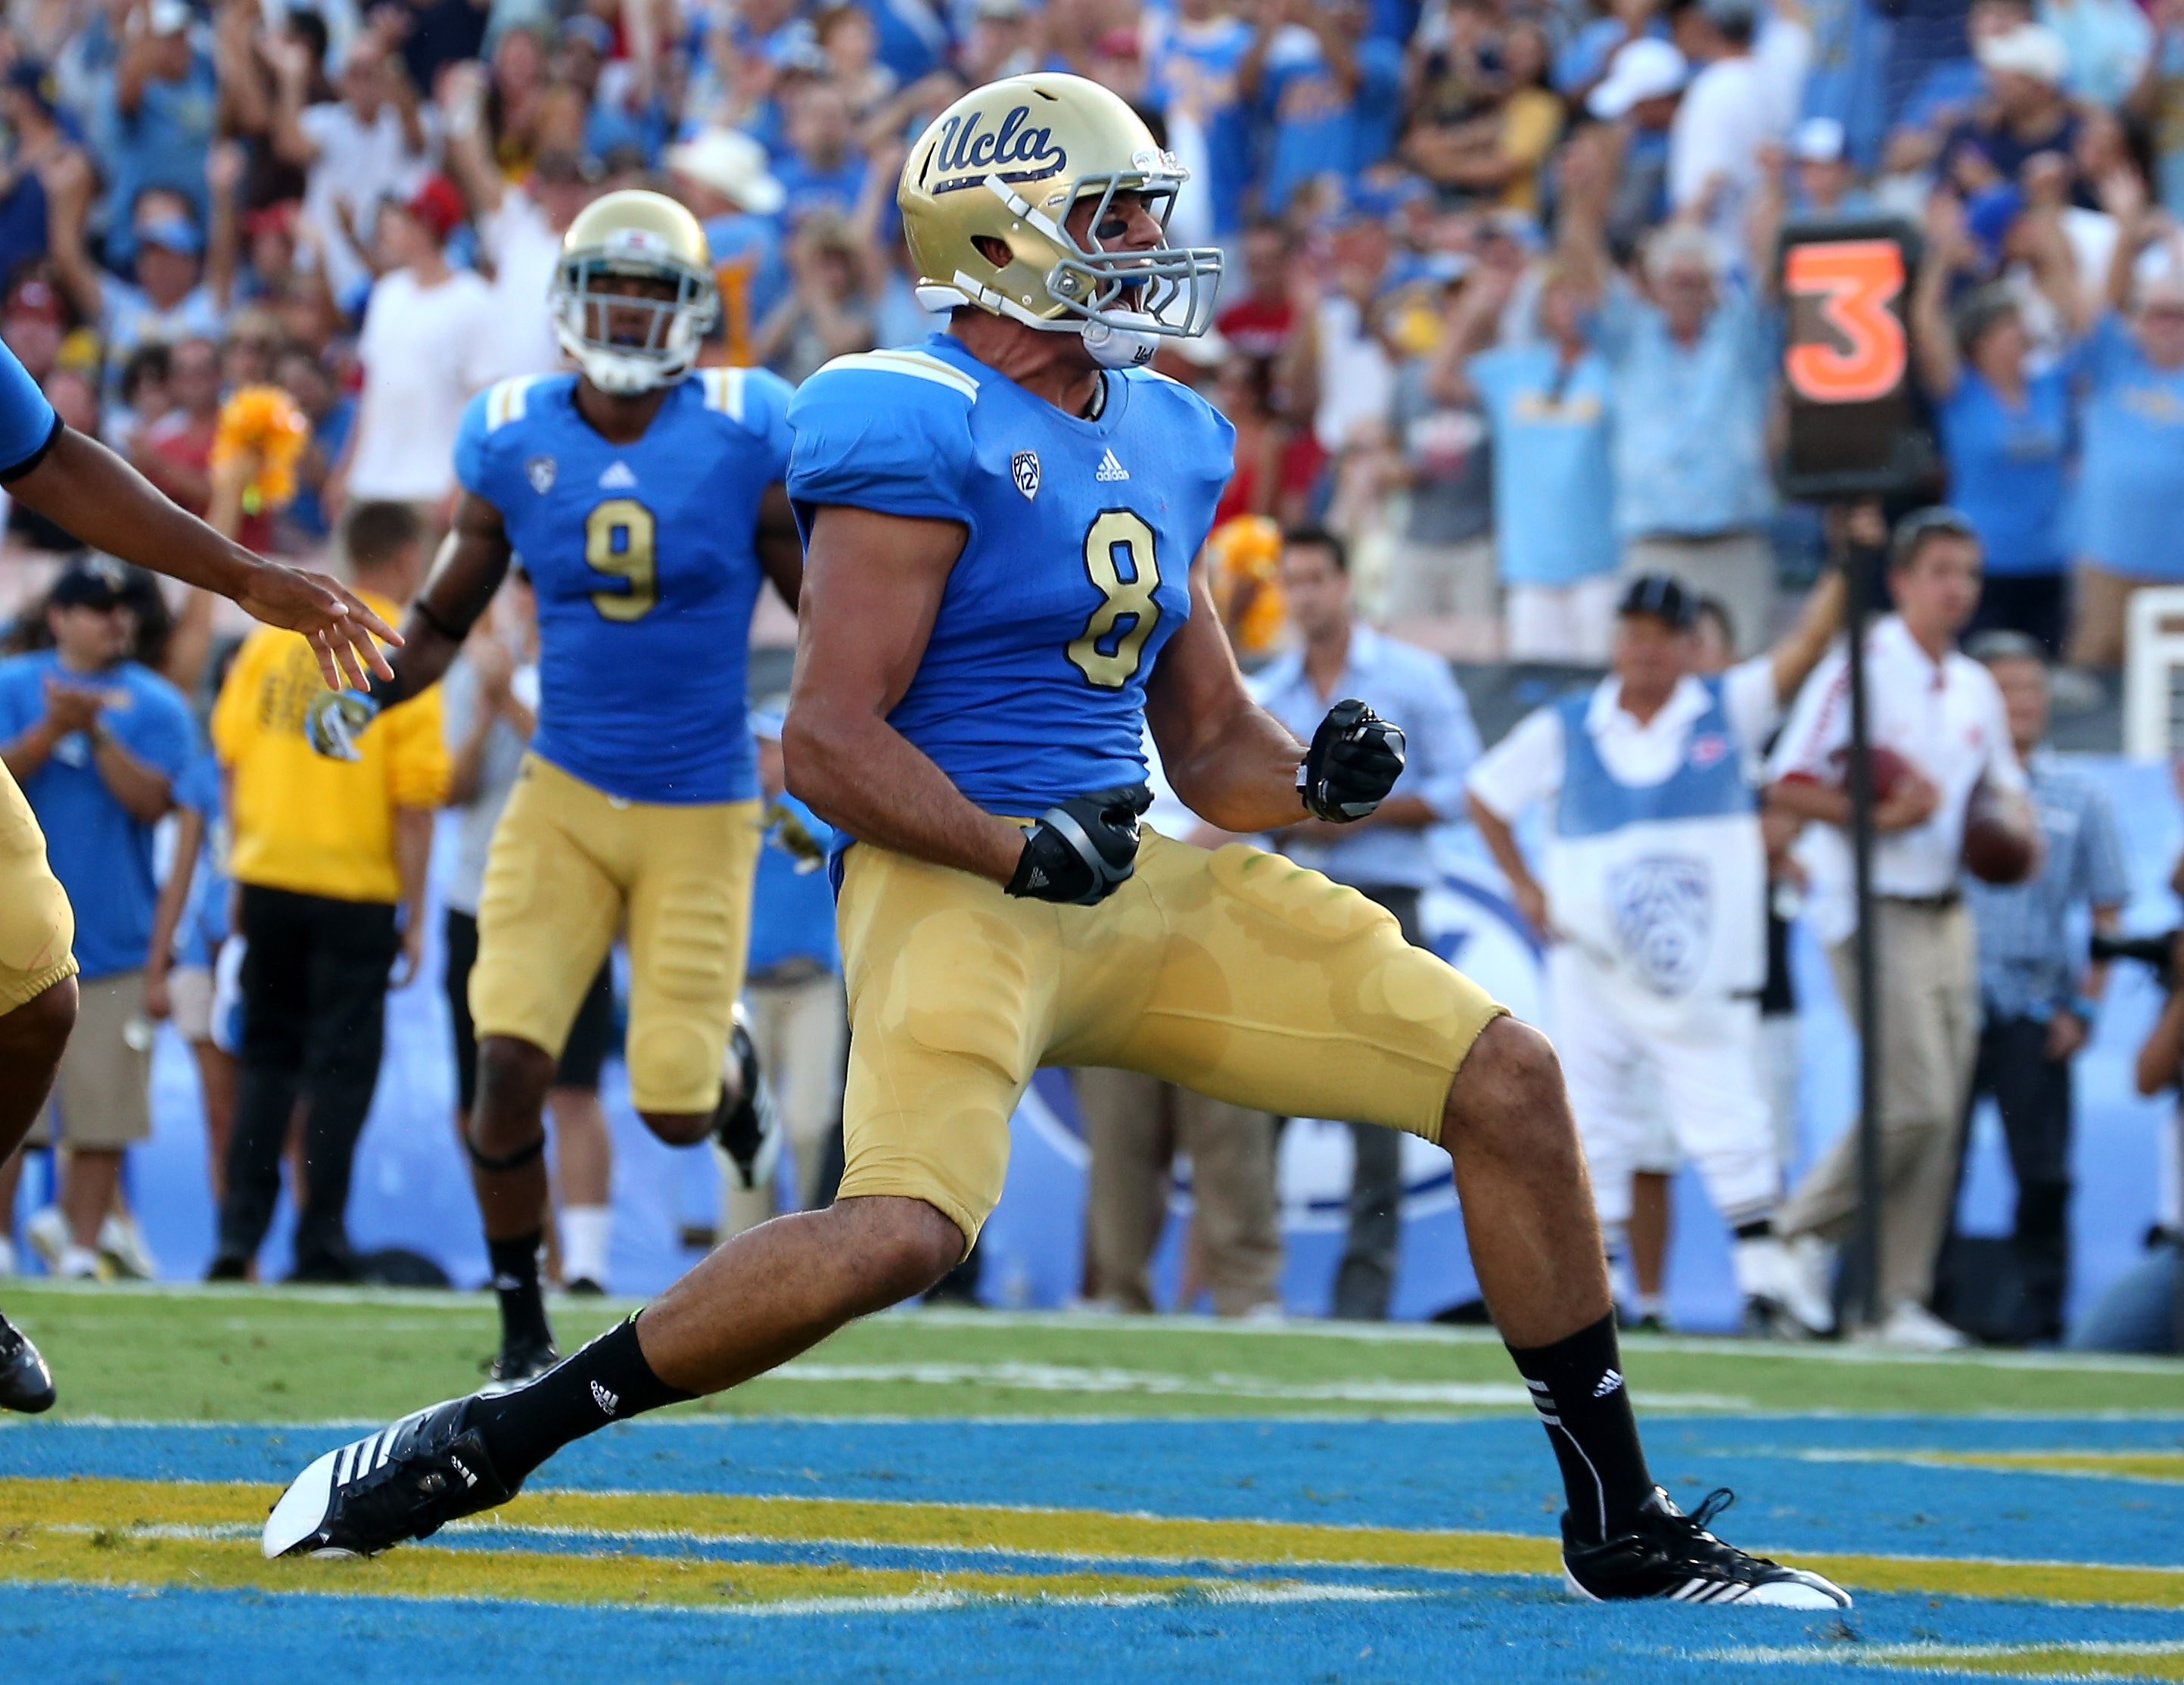 Joseph Fauria (#8) of the UCLA Bruins celebrates a four yard touchdown catch in the second quarter against the Nebraska Cornhuskers at the Rose Bowl on September 8, 2012 in Pasadena, California.